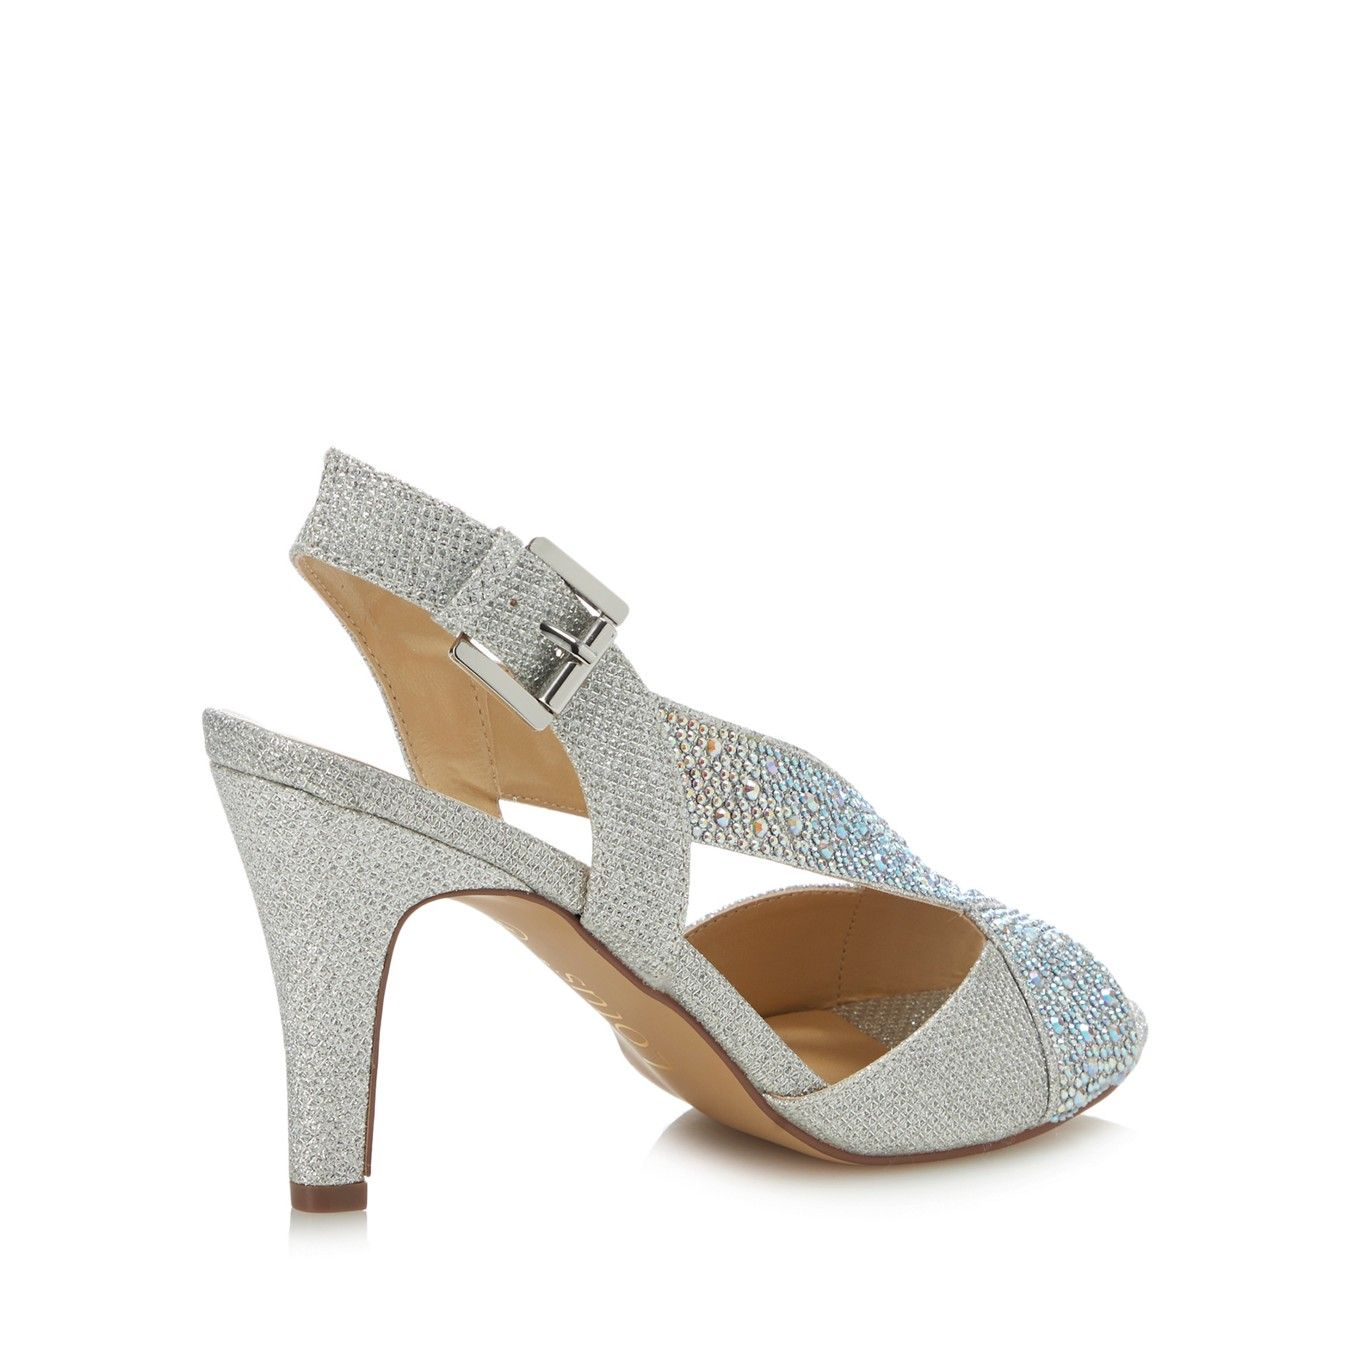 bb70103433 Silver Diamante 'Anya' High Stiletto Heel Peep Toe Shoes | Mother of ...